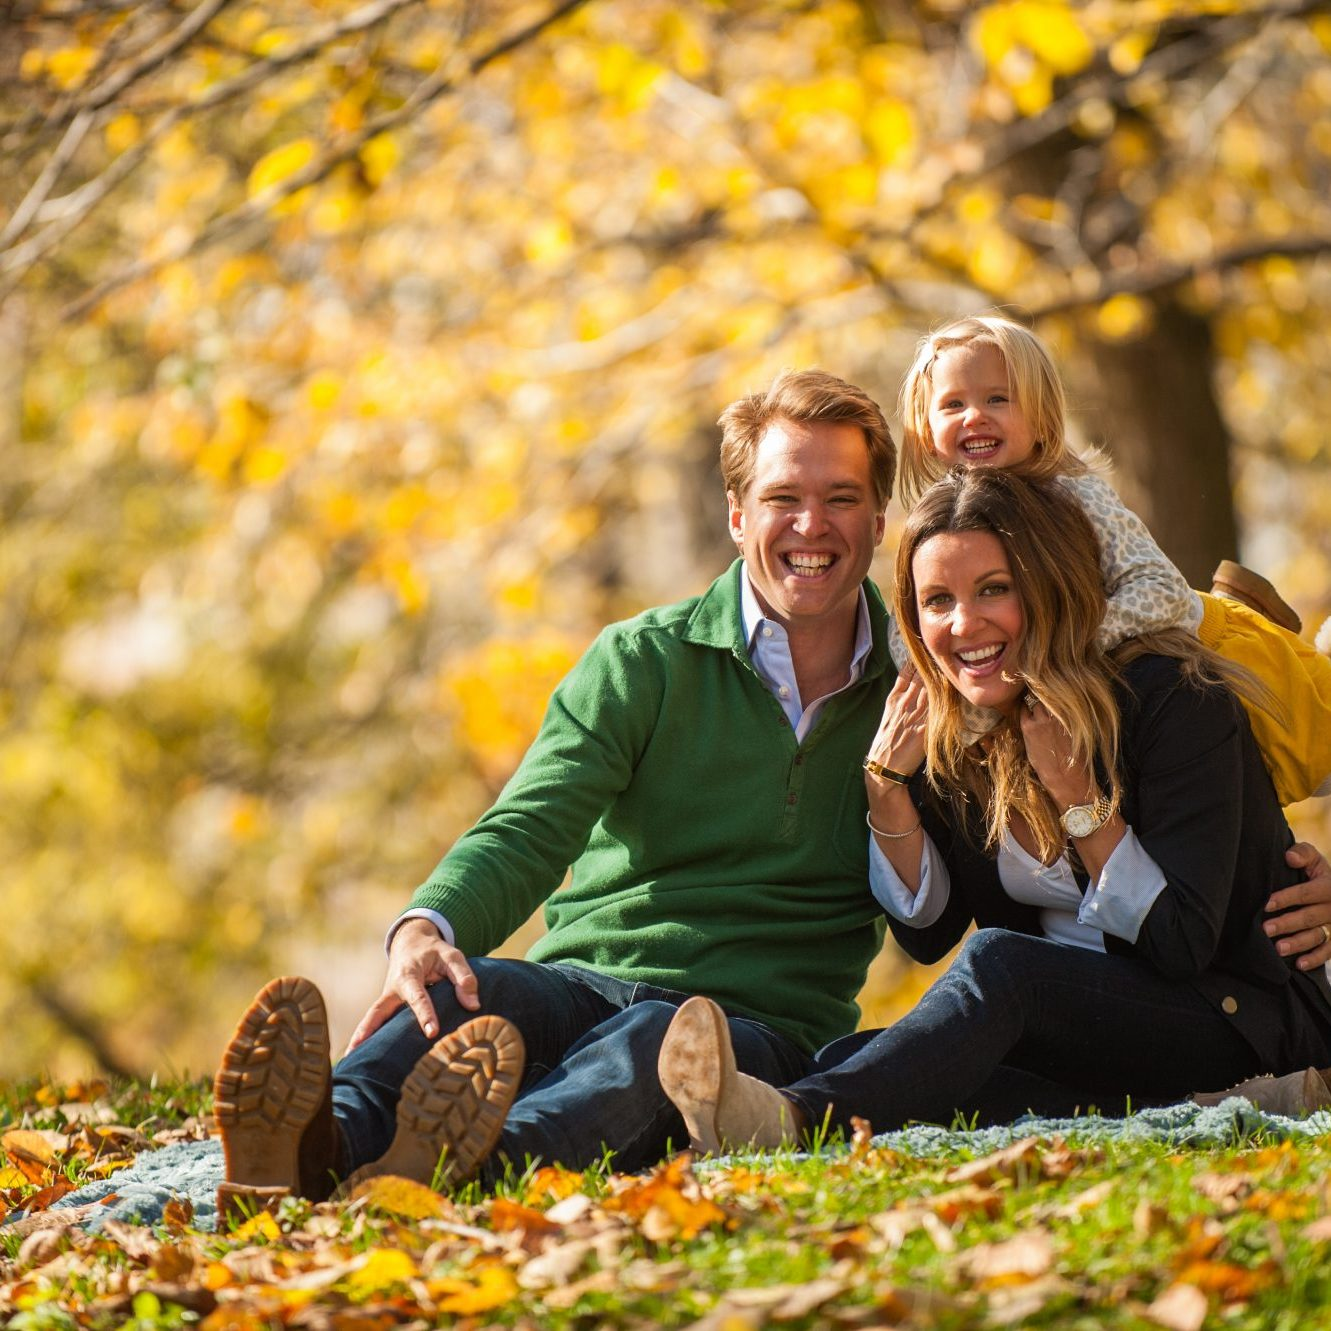 Family of three sitting and laughing together in Chicago fall leaves